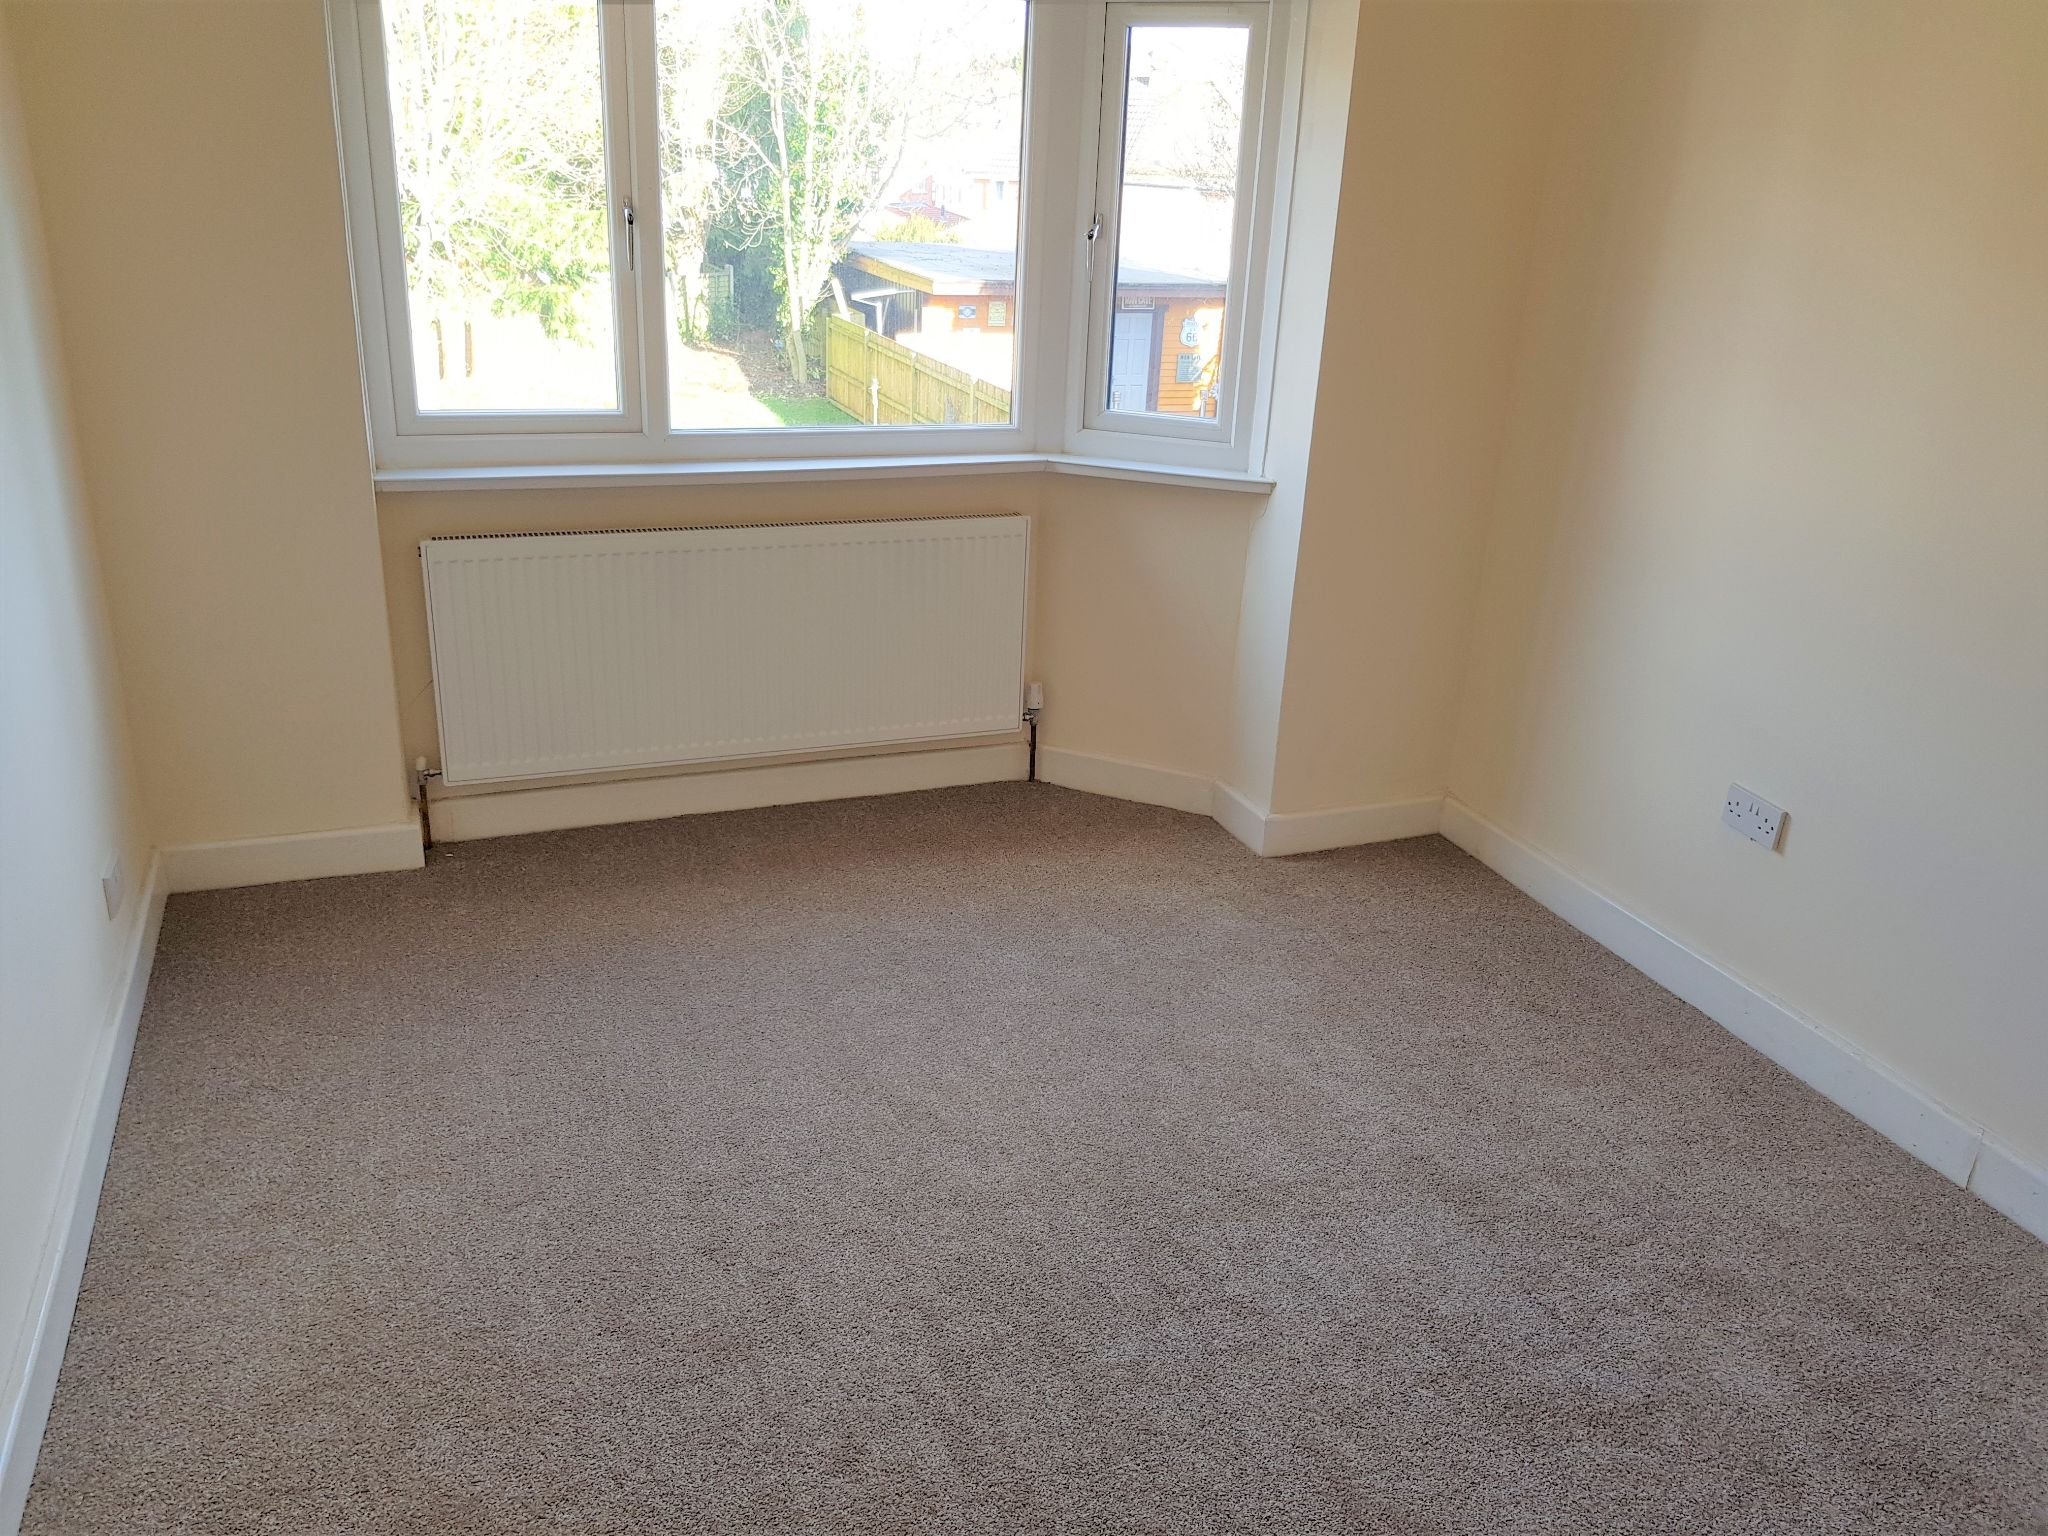 3 Bedroom Semi-detached House For Sale - Rear Double Bedroom